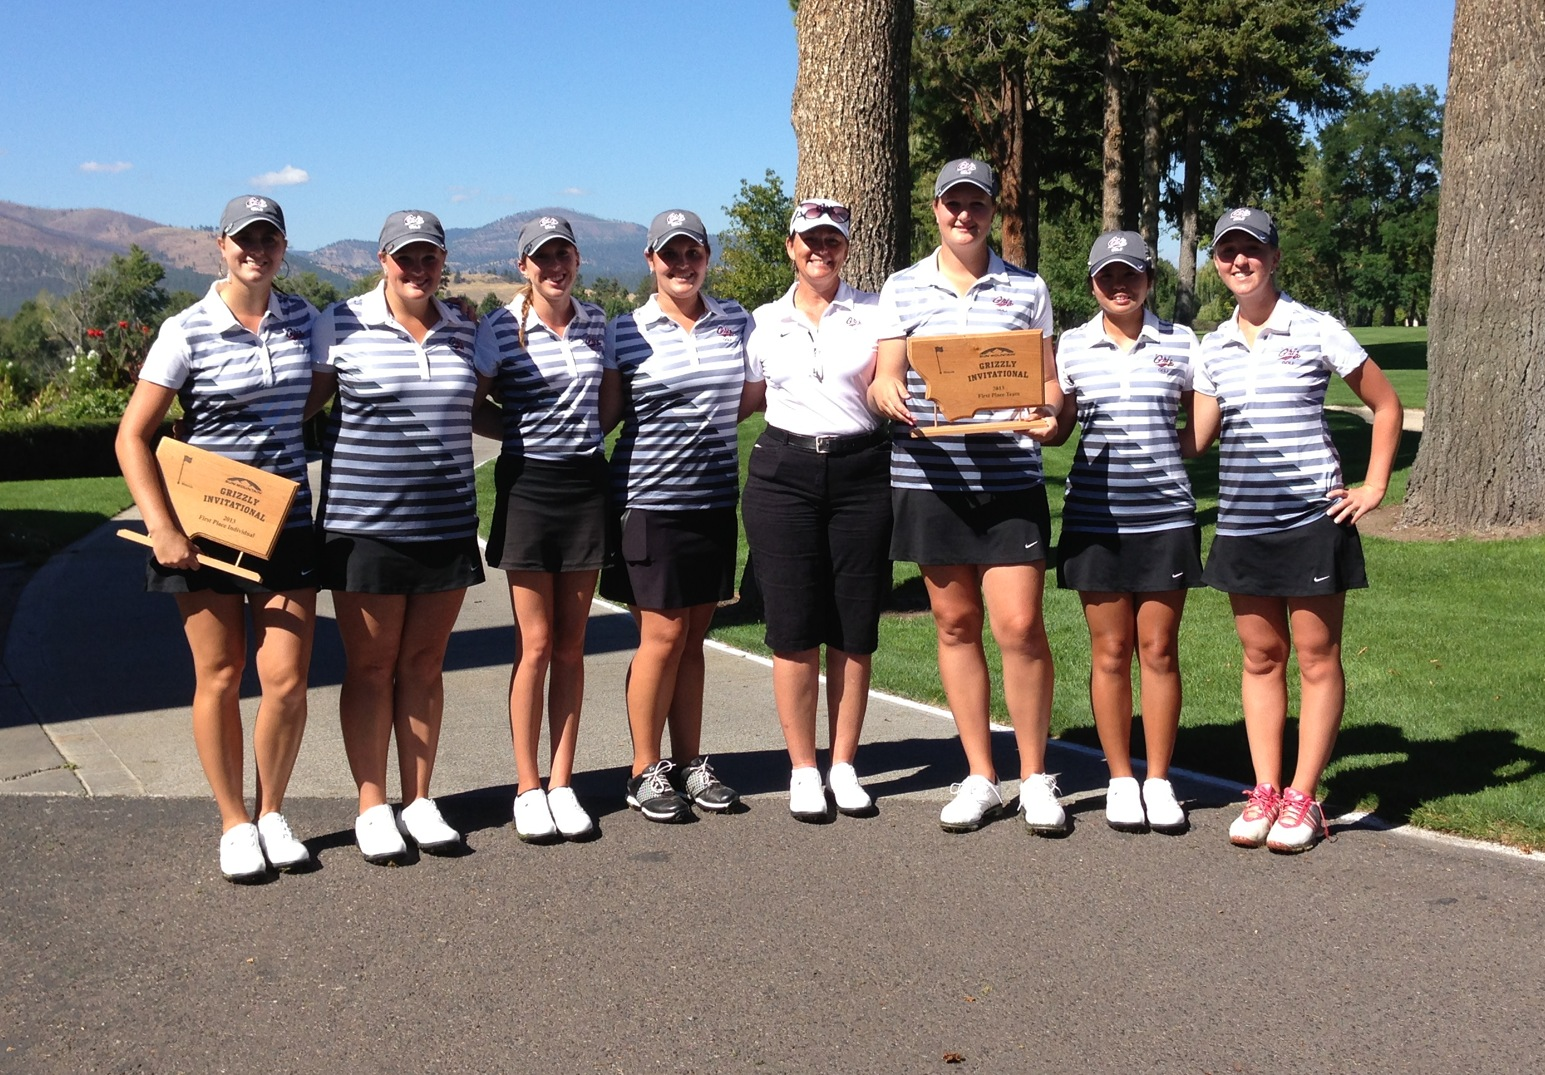 Congrats to the Griz golf team on winning the Sun Mountain Grizzly Invitational.